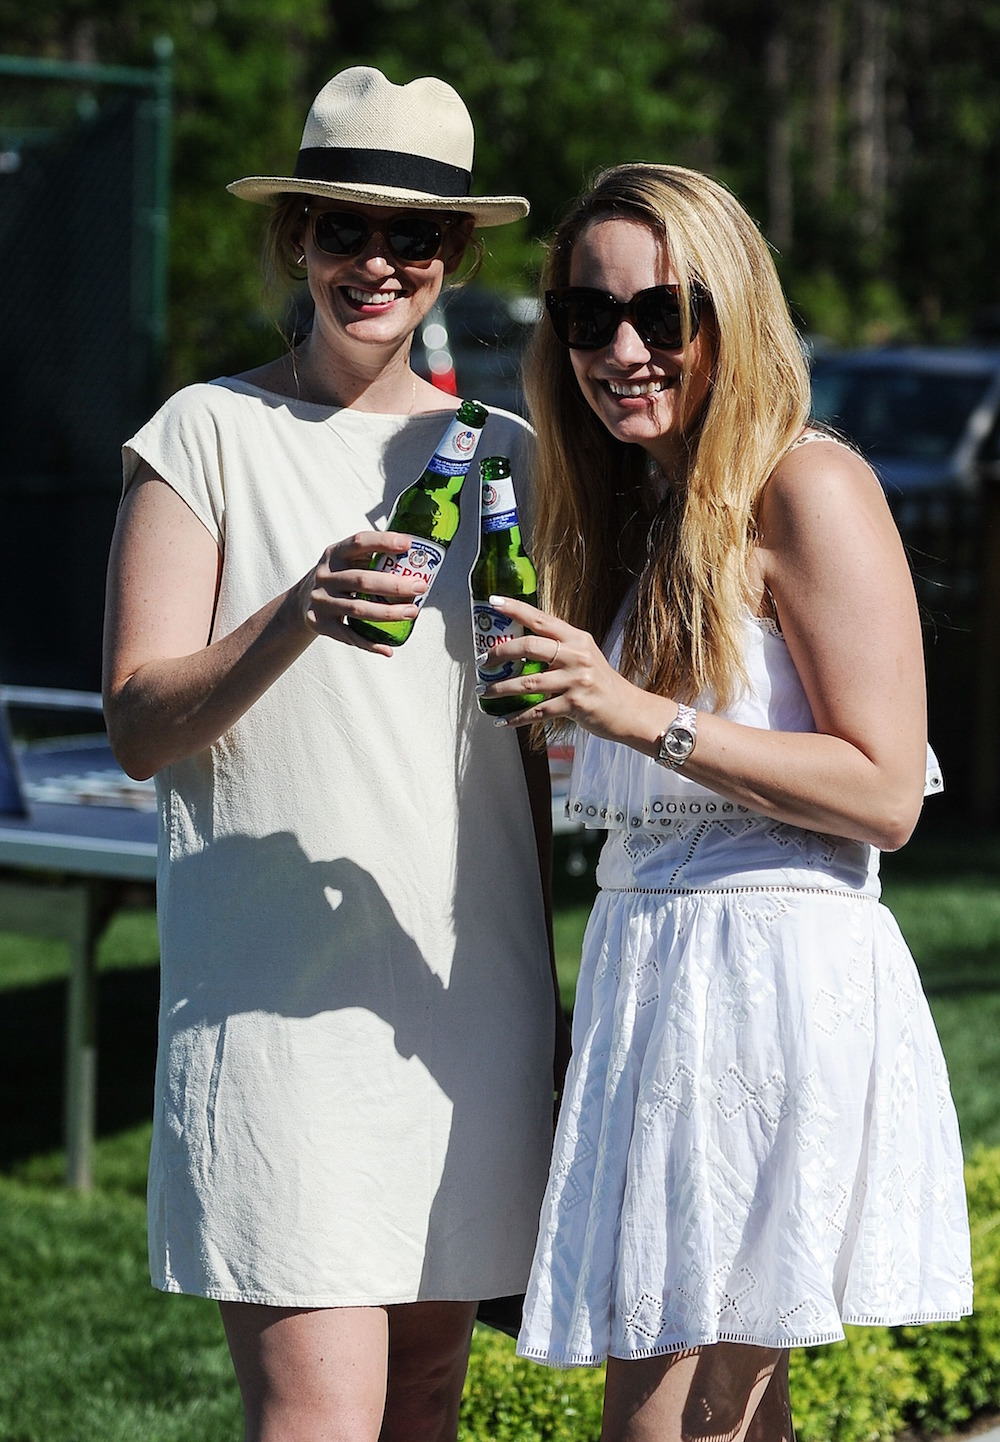 EAST HAMPTON, NY - JUNE 18: (EXCLUSIVE ACCESS, SPECIAL RATES APPLY) Ashley Baker and Grace Atwood attend The Daily Summer's celebration of Marion Bartoli's new LOVE FILA collection at Hampton Racquet on June 18, 2016 in East Hampton, New York. (Photo by Daniel Zuchnik/Getty Images for The Daily)